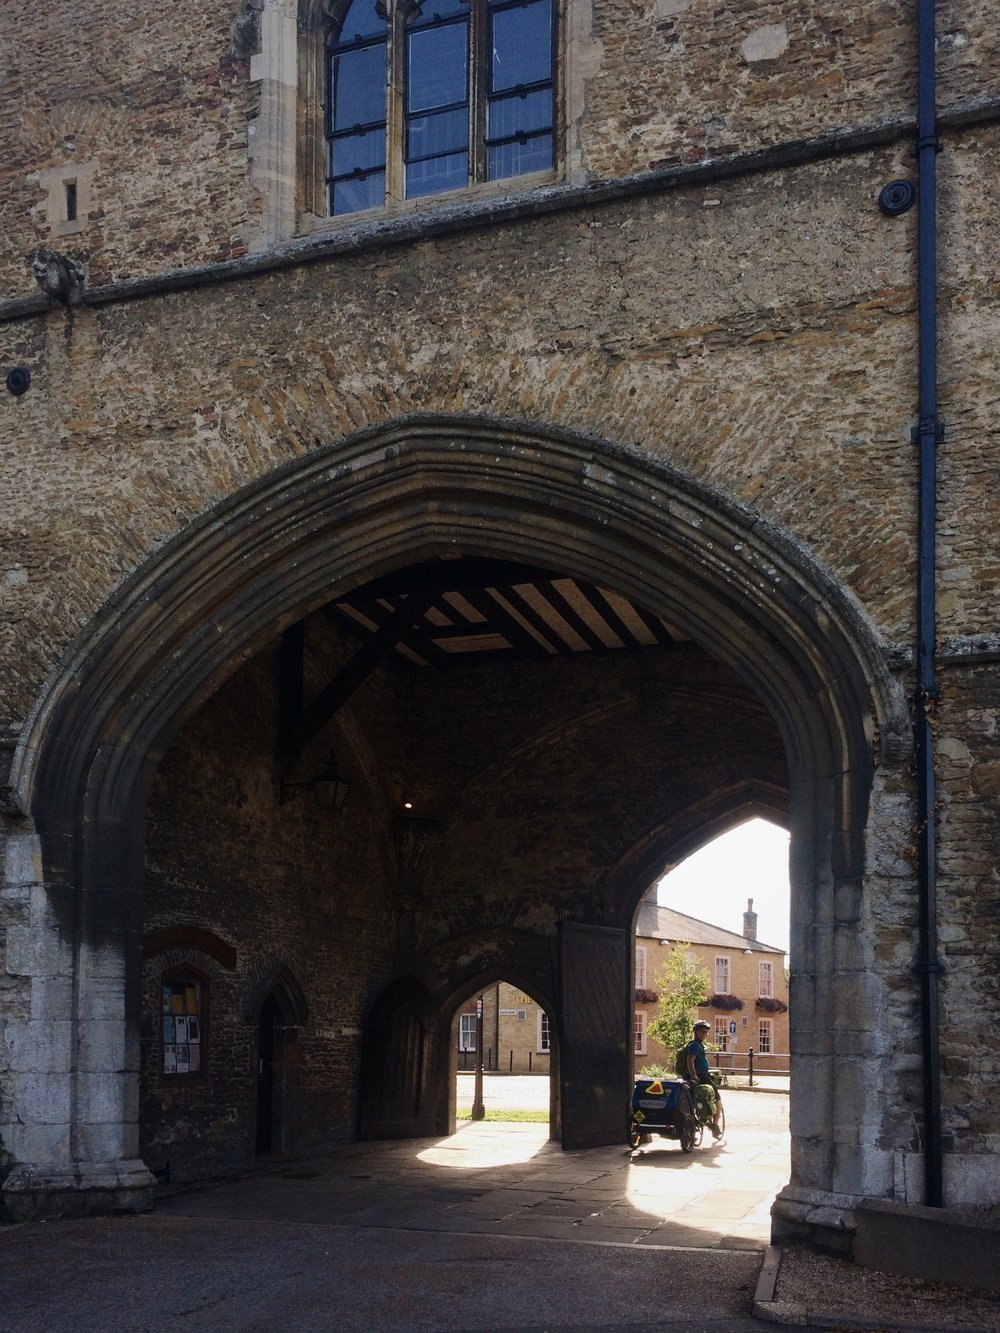 The arch at the Ely Cathedral Gate House.